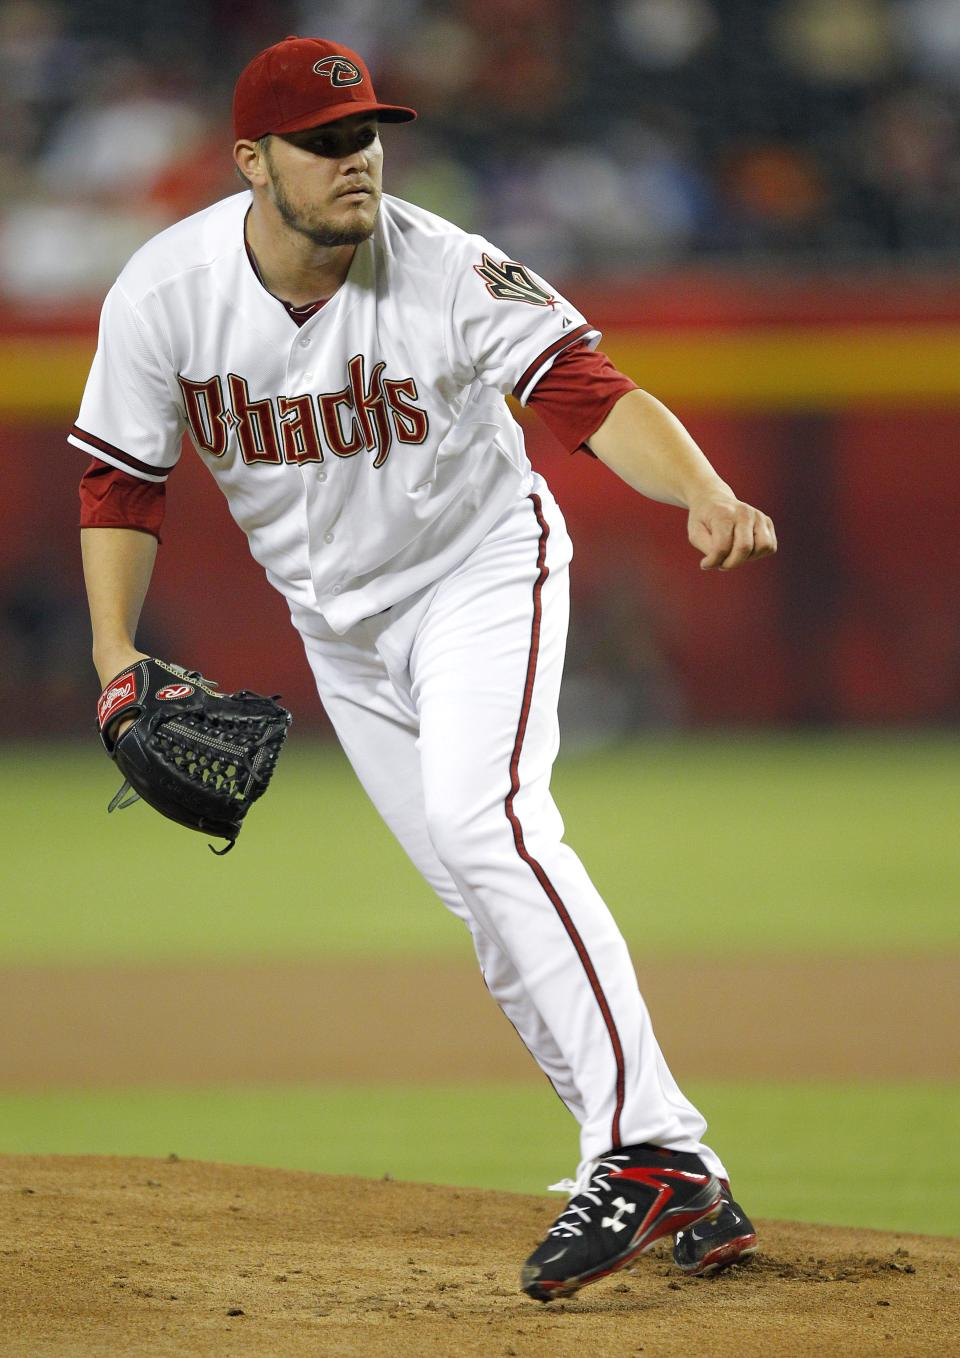 Arizona Diamondbacks pitcher Wade Miley follows through against the New York Mets during the first inning of a baseball game on Thursday, July 26, 2012, in Phoenix. (AP Photo/Matt York)